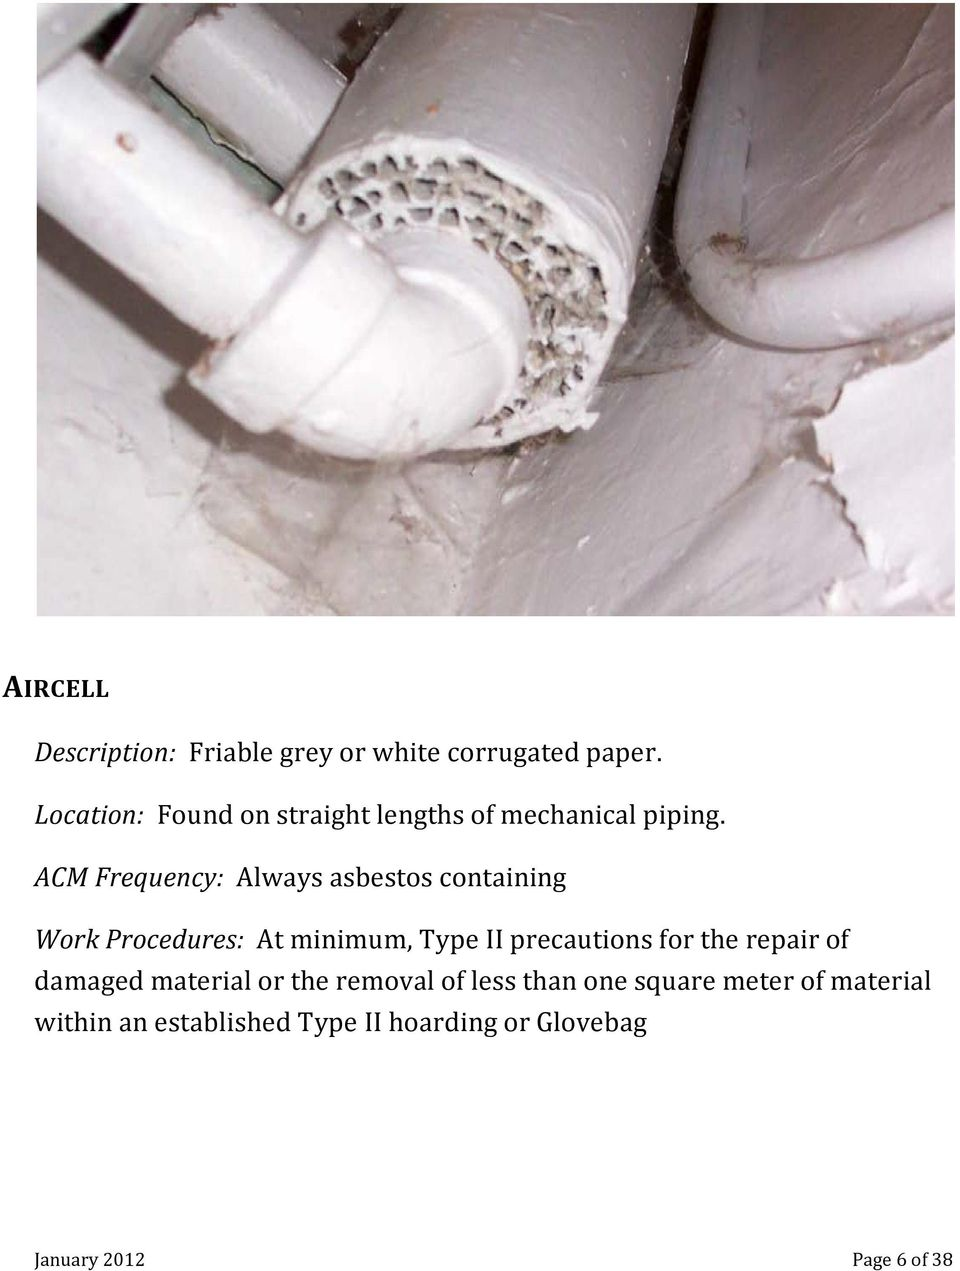 ACM Frequency: Always asbestos containing Work Procedures: At minimum, Type II precautions for